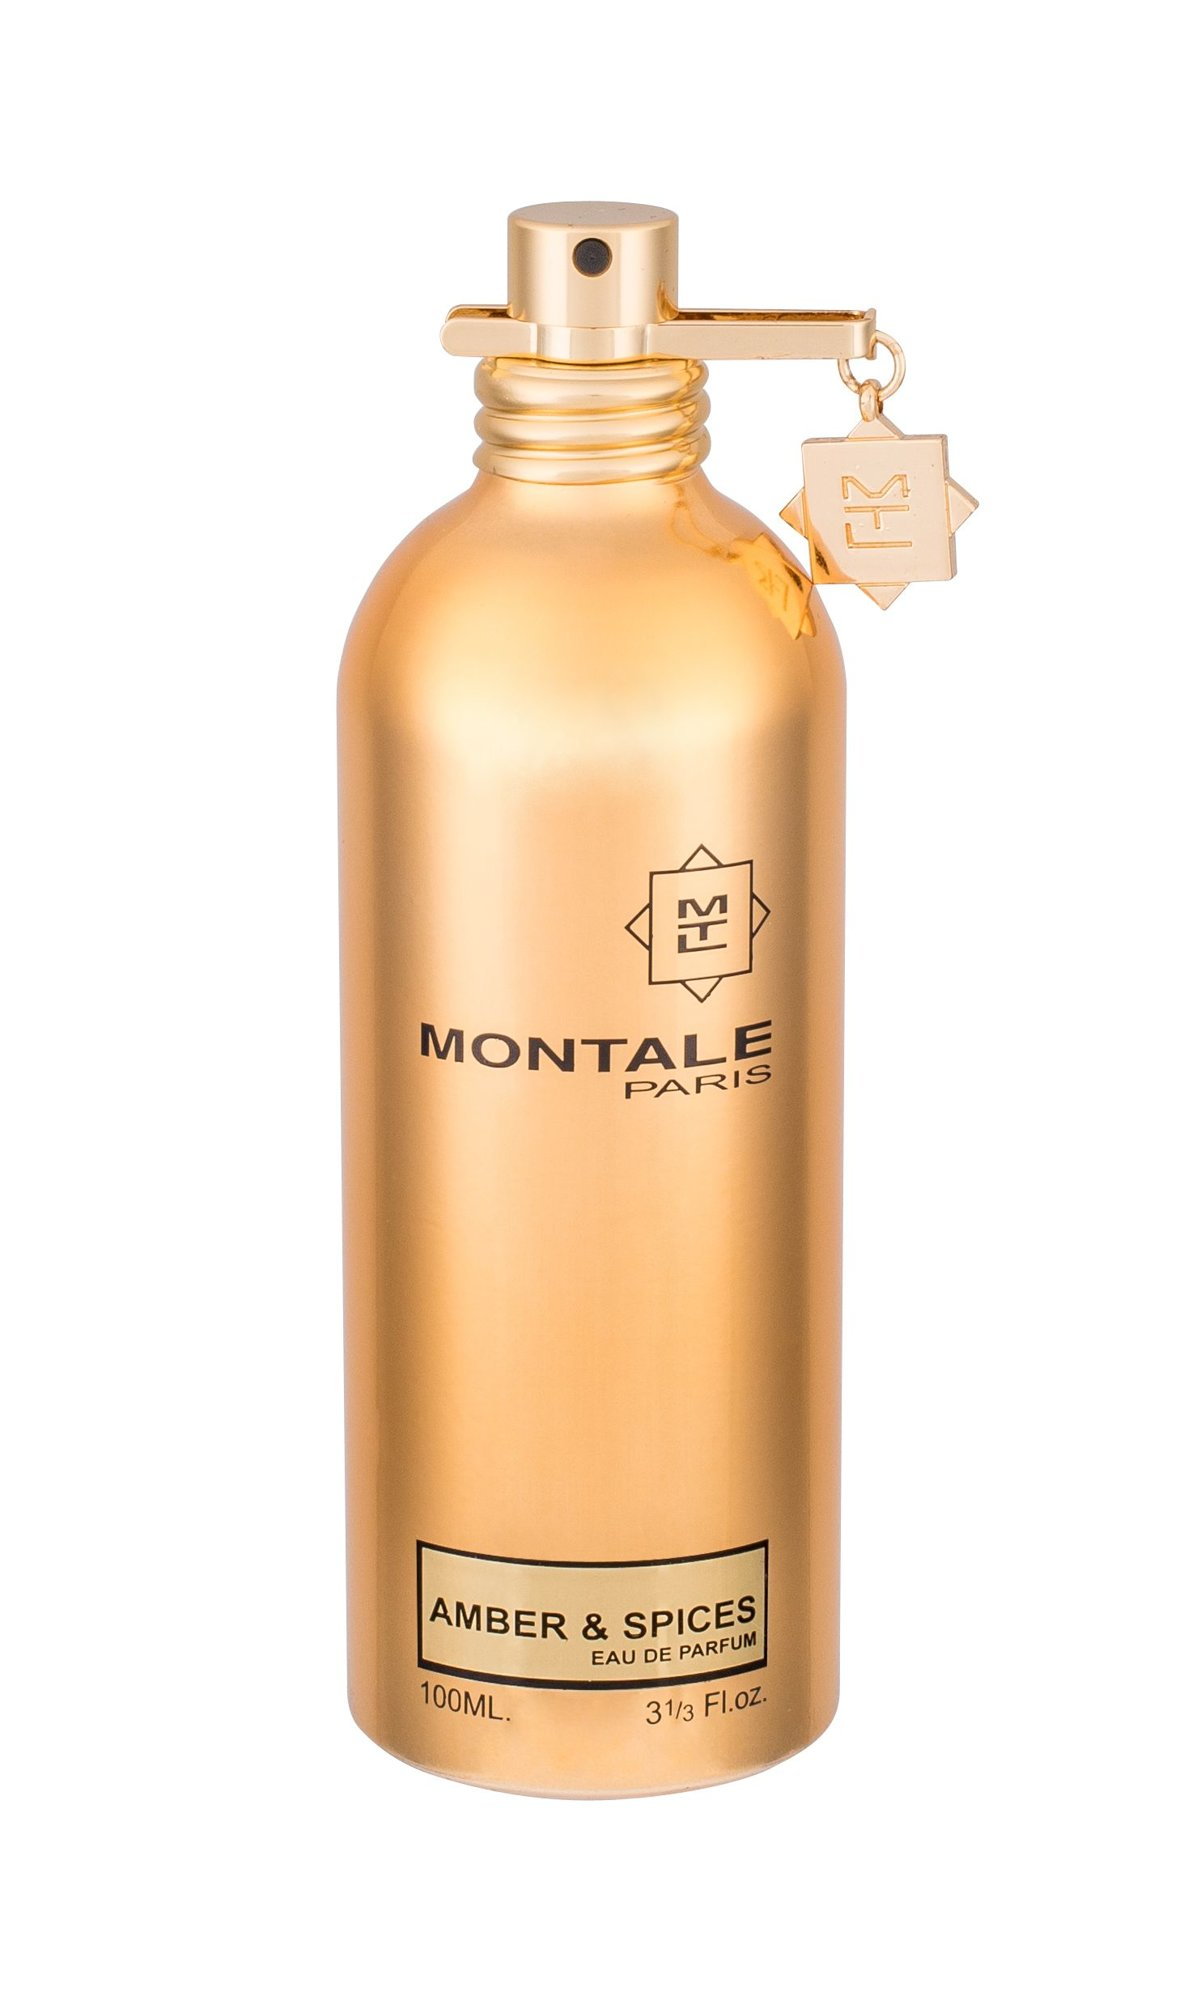 Montale Paris Amber & Spices, Parfumovaná voda 100ml